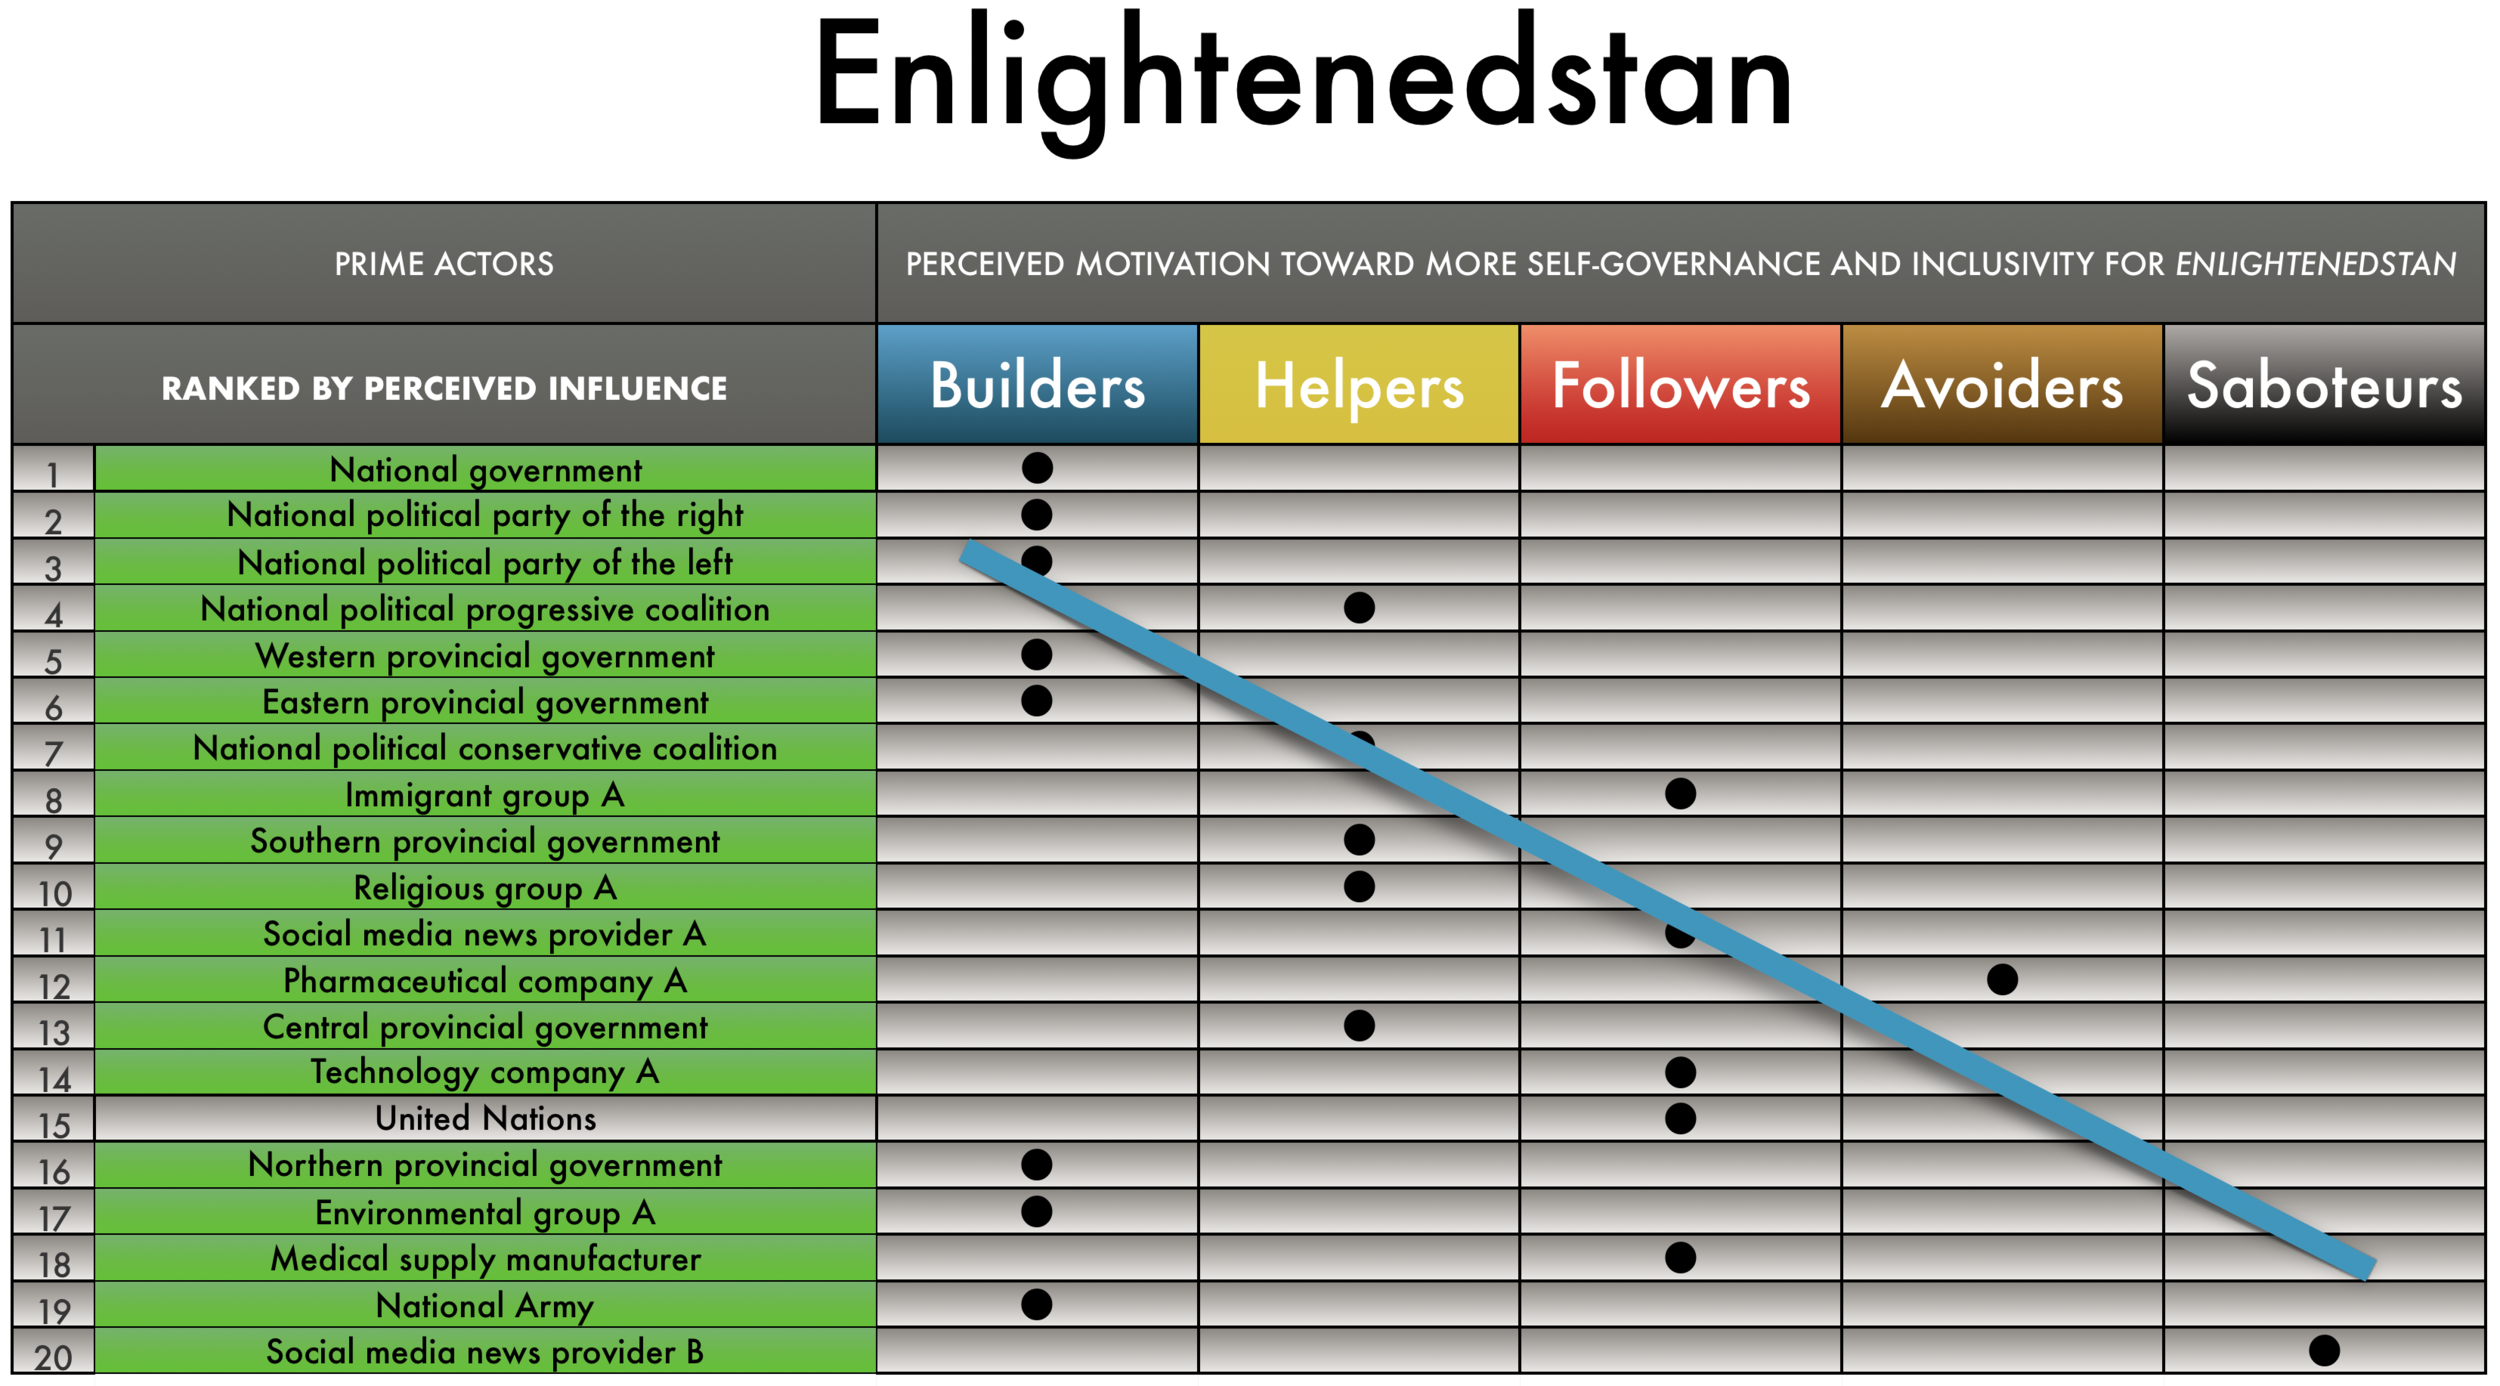 In  Enlightenedstan , almost all of its prime actors are from the country itself. The most influential actors are also the ones who want to help the country the most (builders).